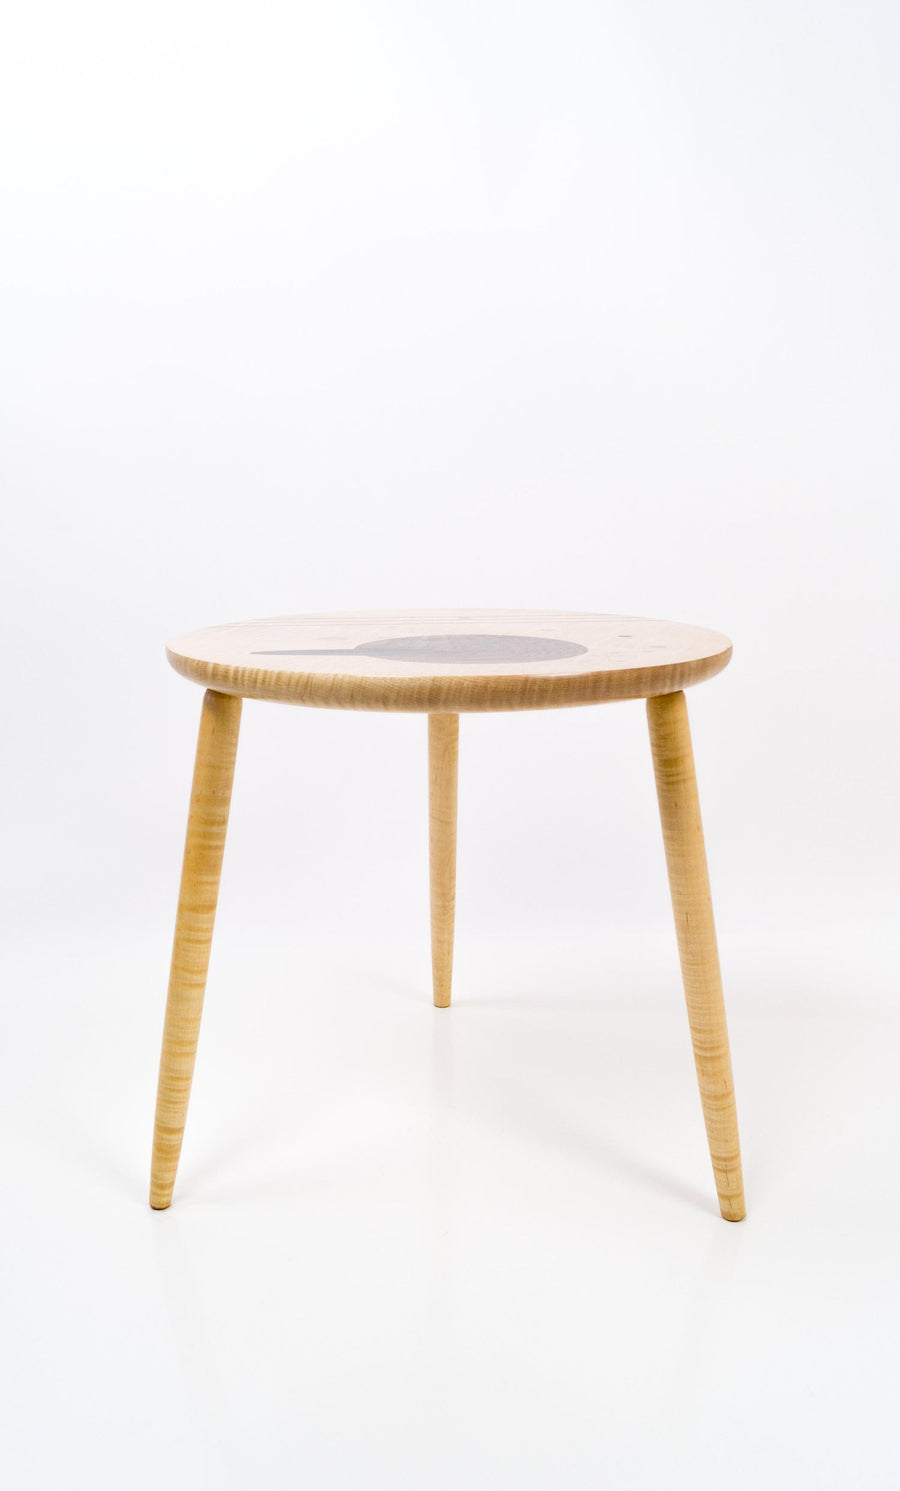 Artistic and unique designer side table in wood, inspired by mid-century modern design. Represented by creative space and gallery in New York City.